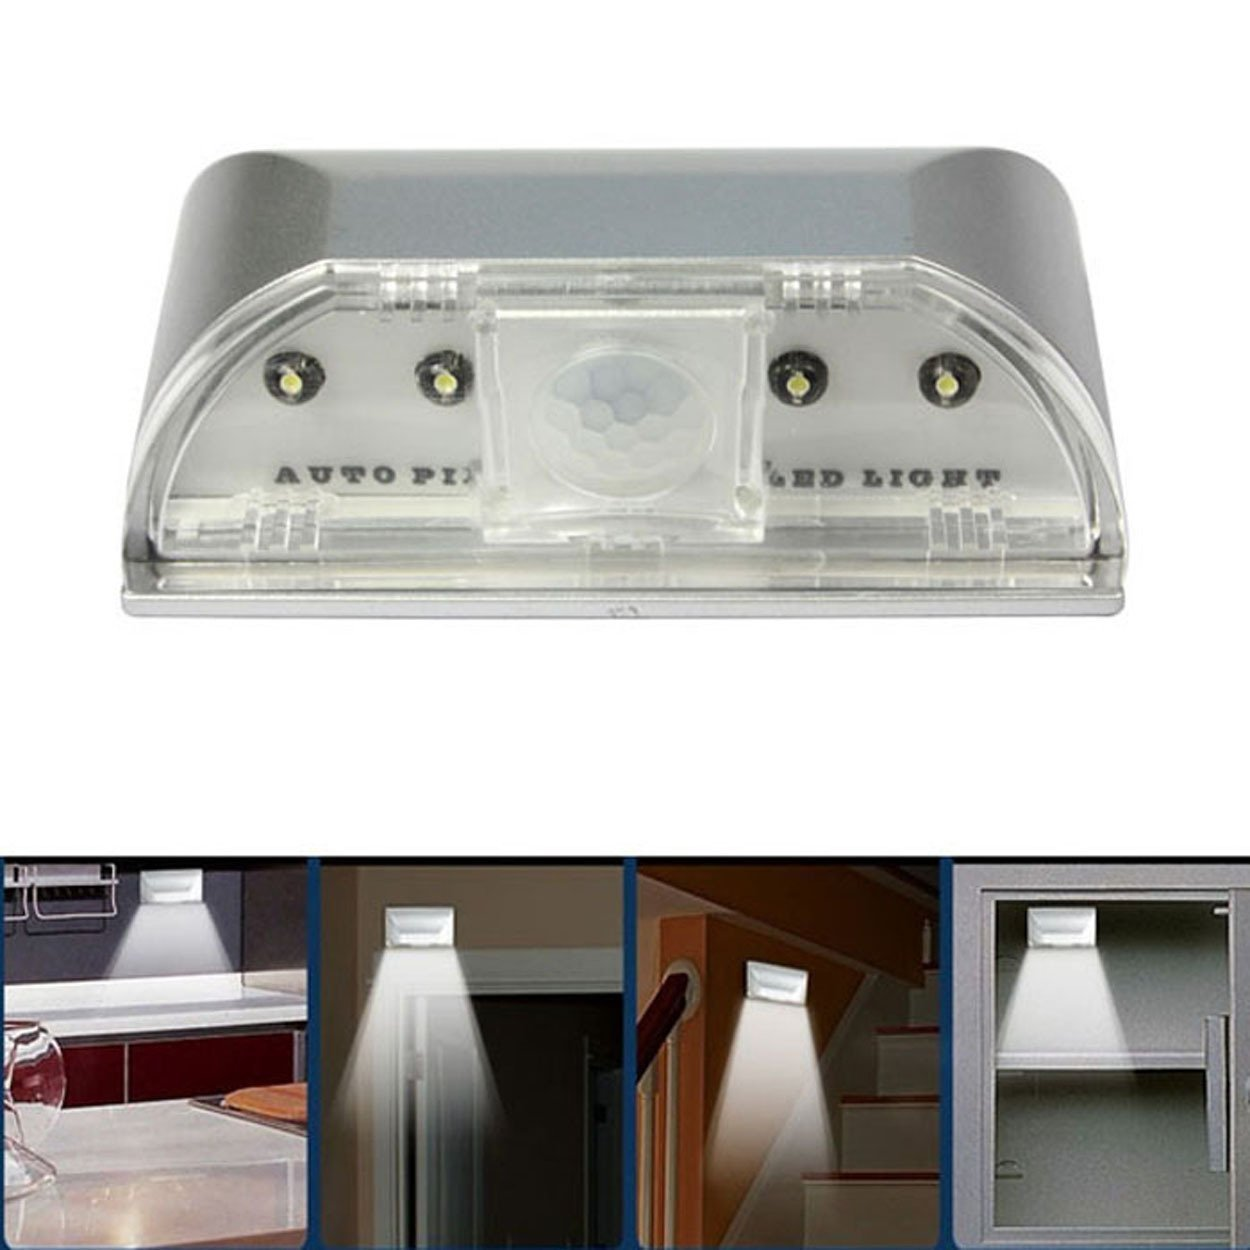 4 LED Light Lamp PIR Auto Keyhole Led Sensor Motion Detector Wireless by Buyincoins